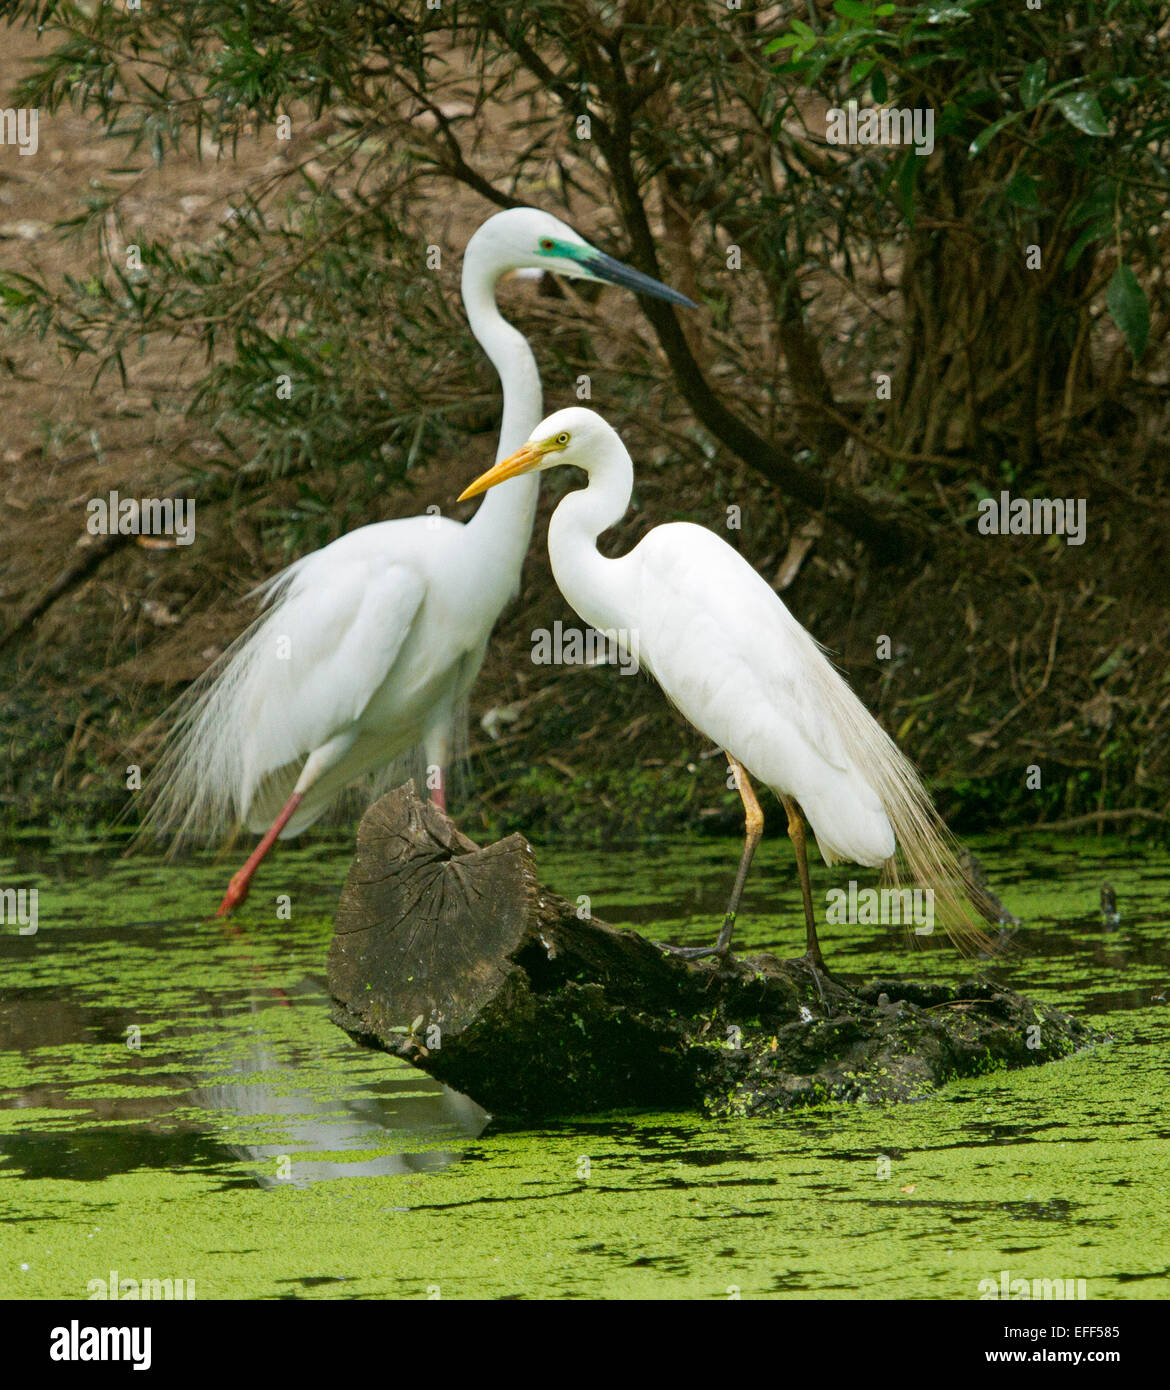 Two Australian great egrets, Ardea modesta, male and female in breeding plumage on log in water of wetlands at rookery Stock Photo